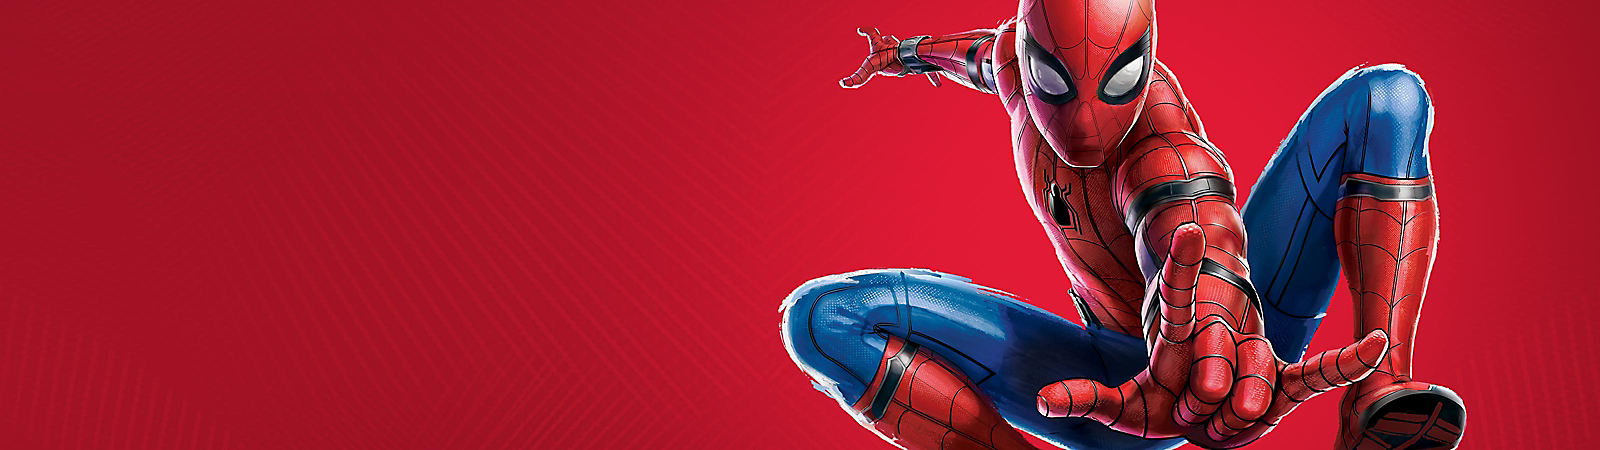 Background image of Marvel Accessories